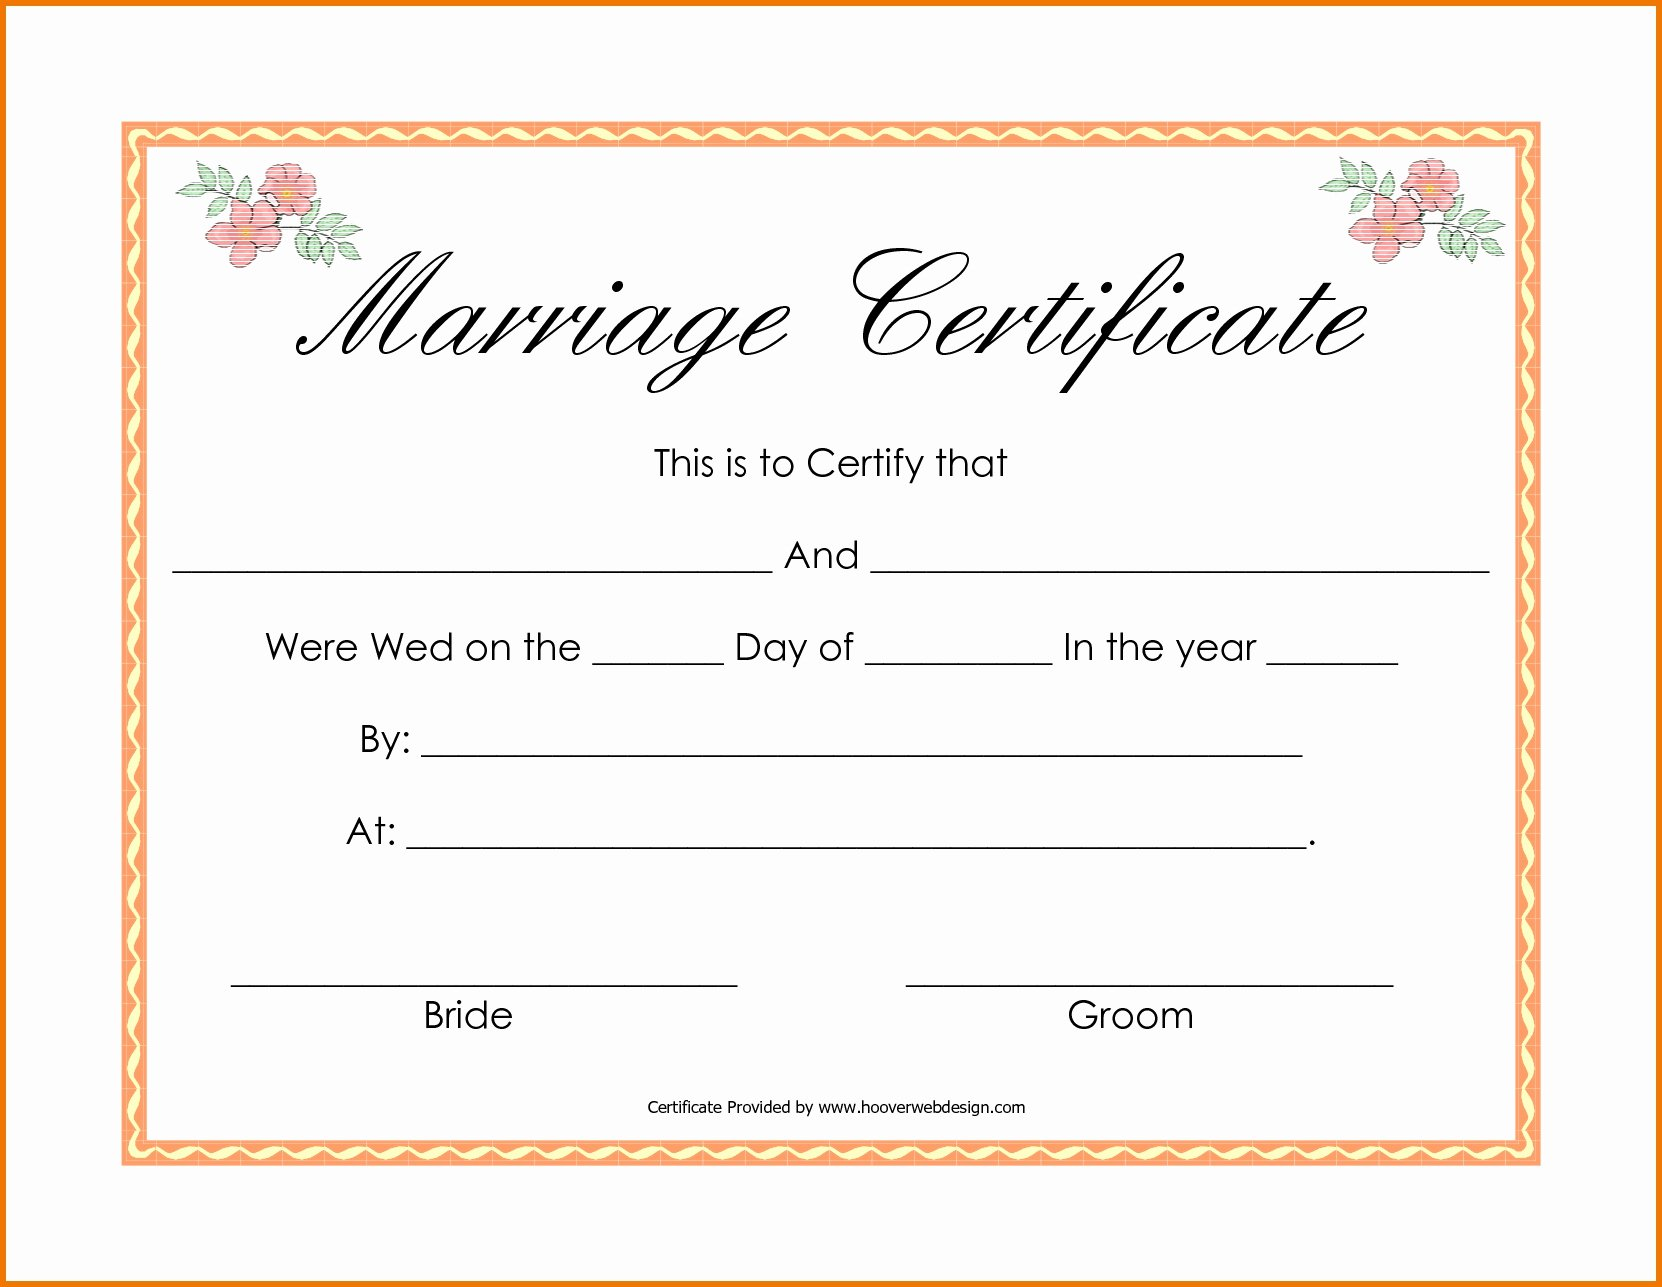 Blank Marriage Certificates Printable Awesome Free Editable Marriage Certificates Exclusive Blank